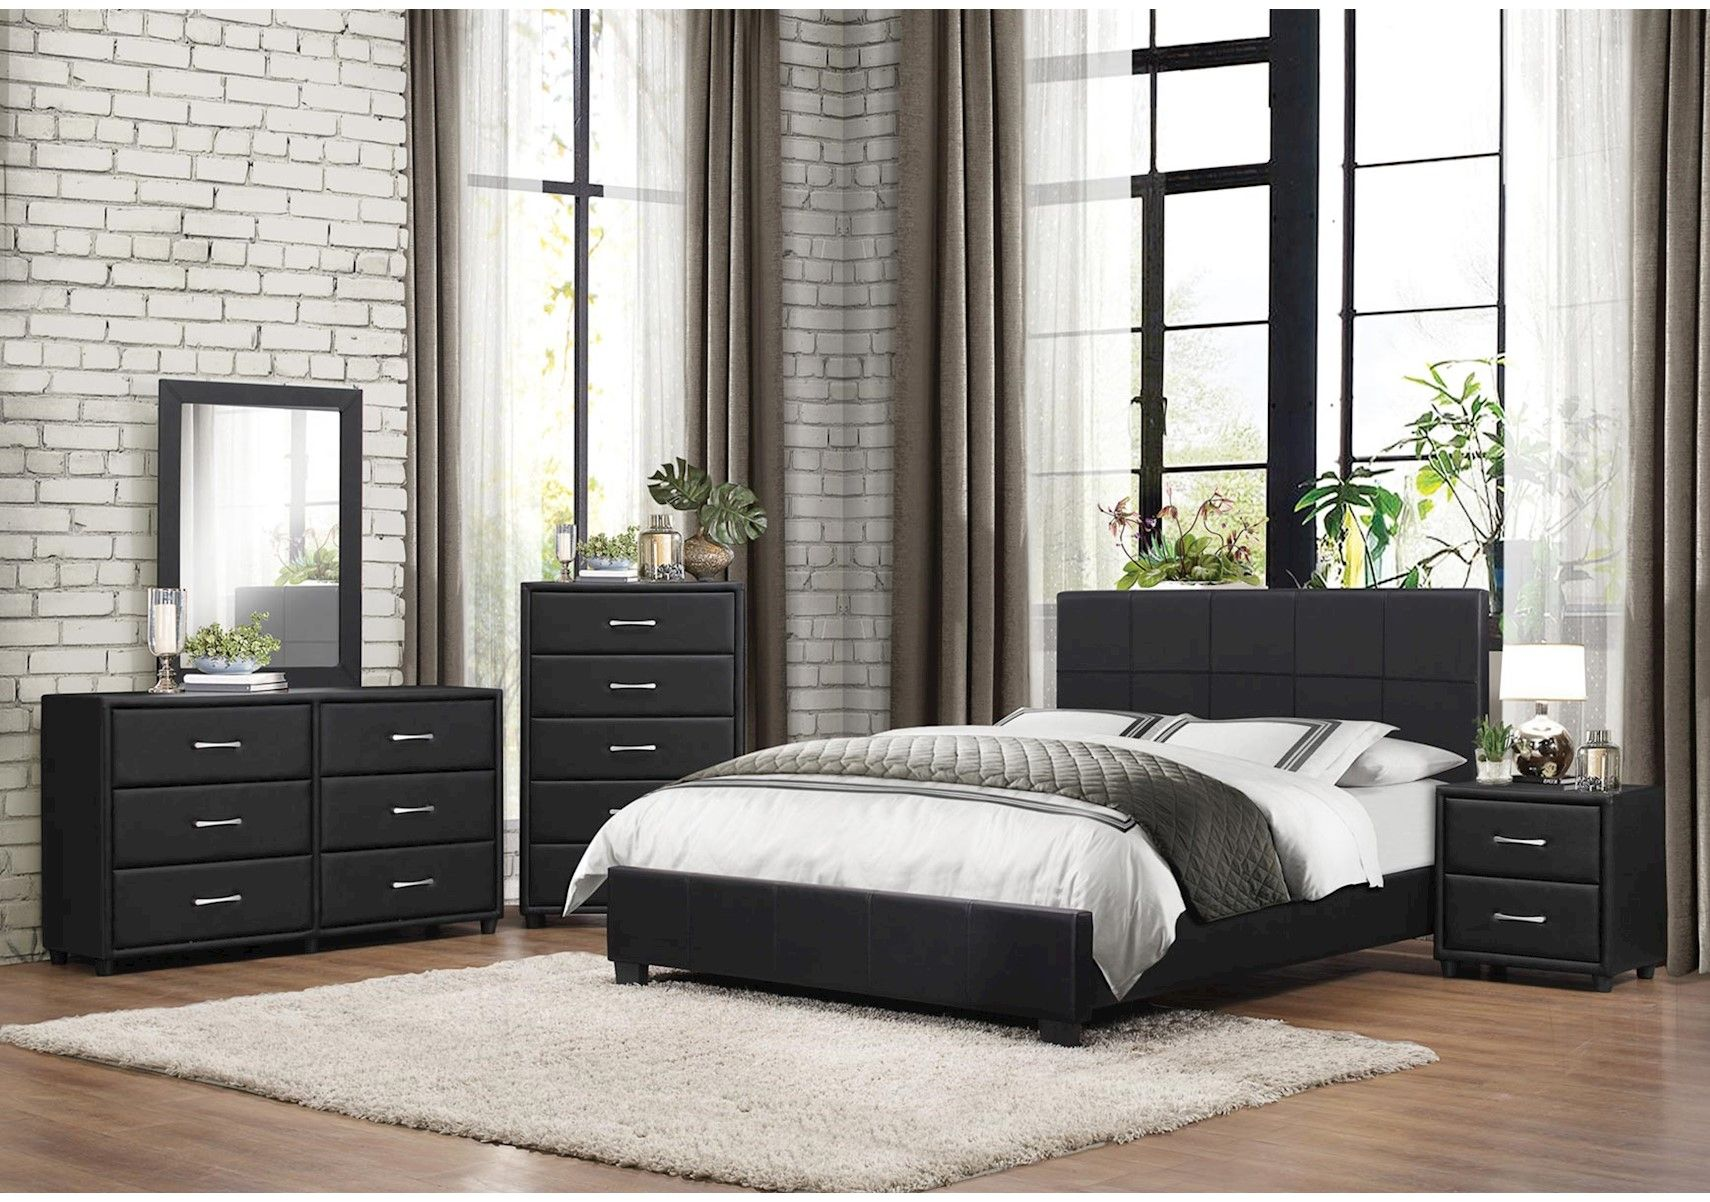 Lacks Onyx 4 Pc Queen Bedroom Set